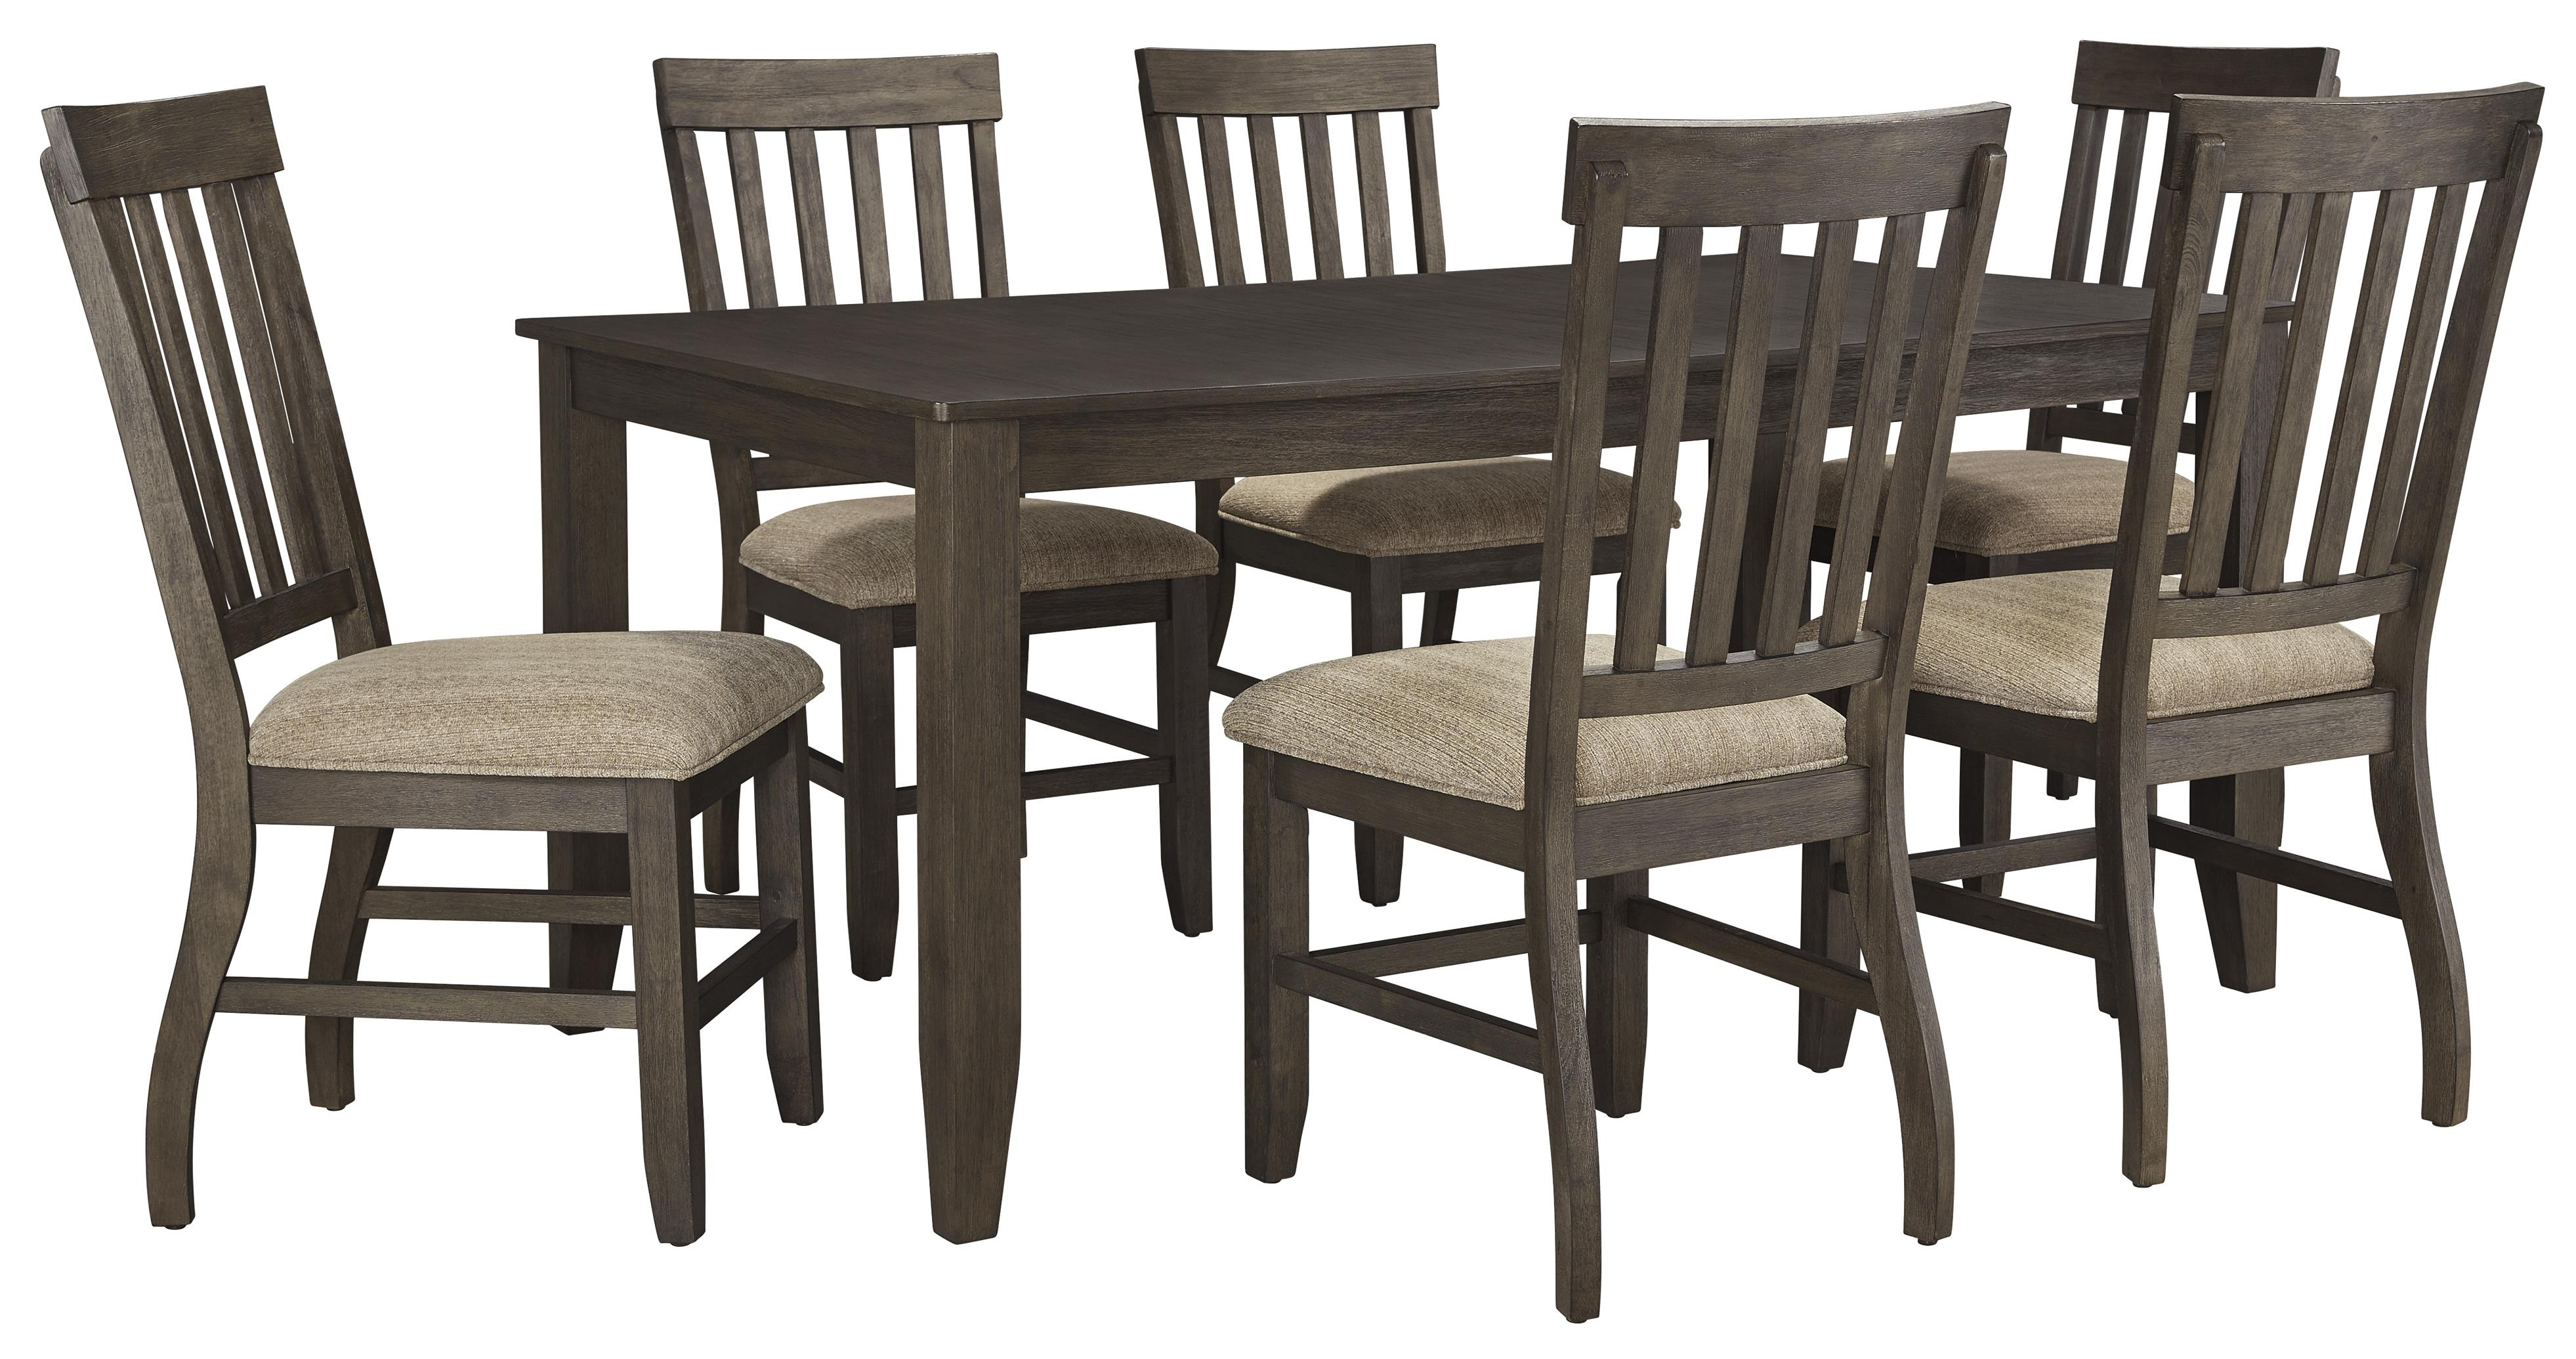 7 piece black dining room set. 7 Piece Rectangular Dining Table Set by Signature Design Ashley